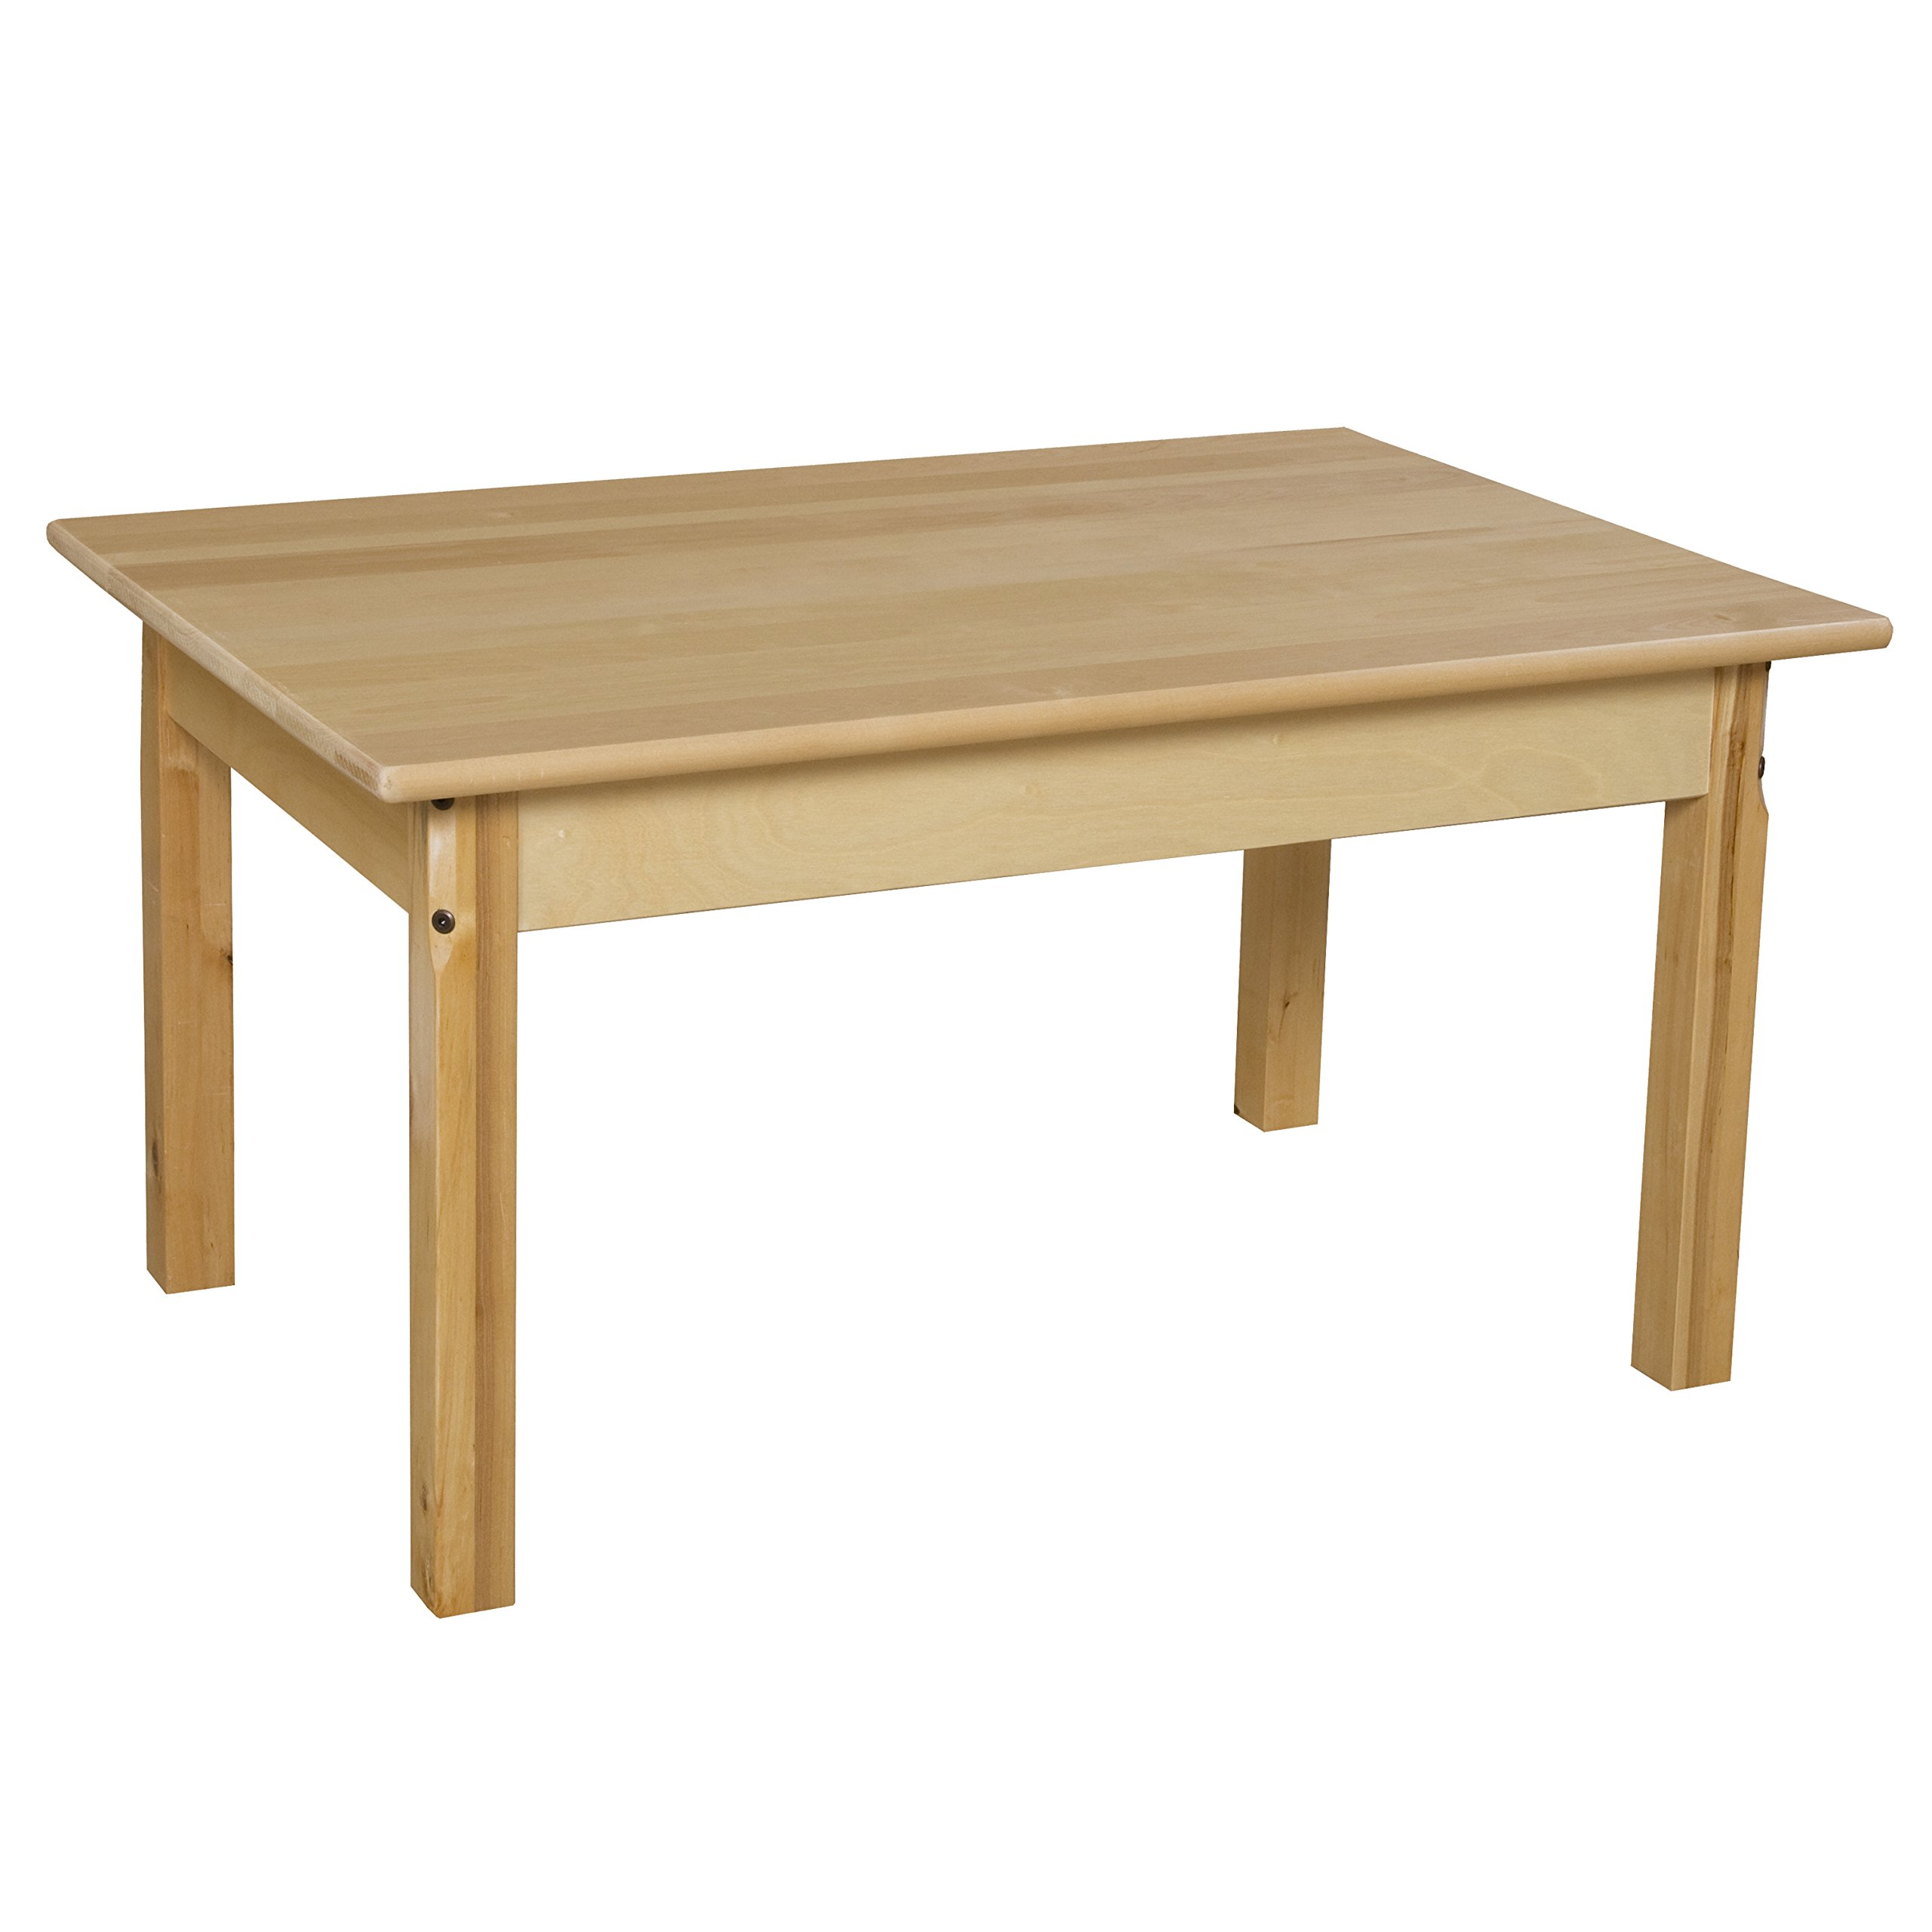 Wood Designs WD82318 Child's Table, 24'' x 36'' Rectangle with 18'' Legs